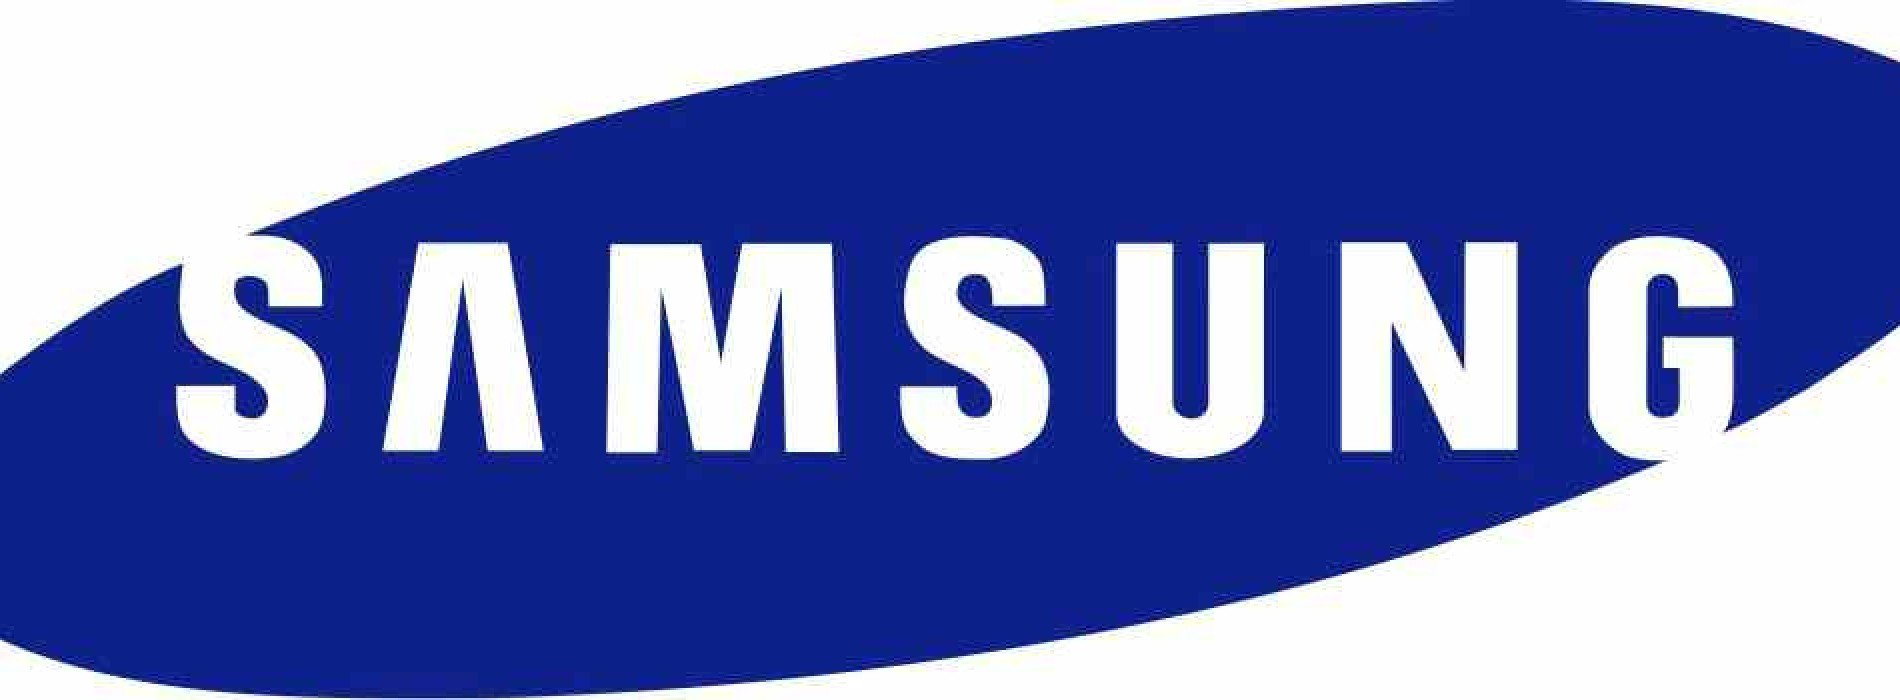 Samsung announces Galaxy Tab 2 10.1 at MWC, Galaxy Note 10.1 confirmed